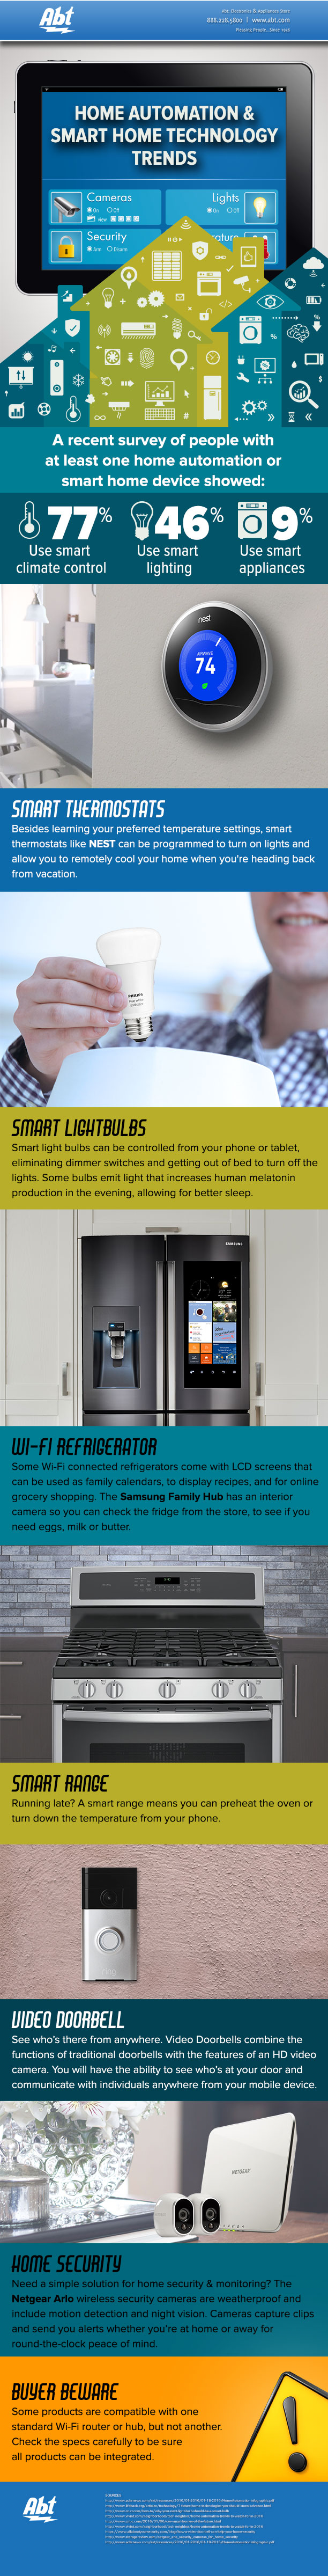 Home Automation & Smart Home Technology Trends Infographic - Abt